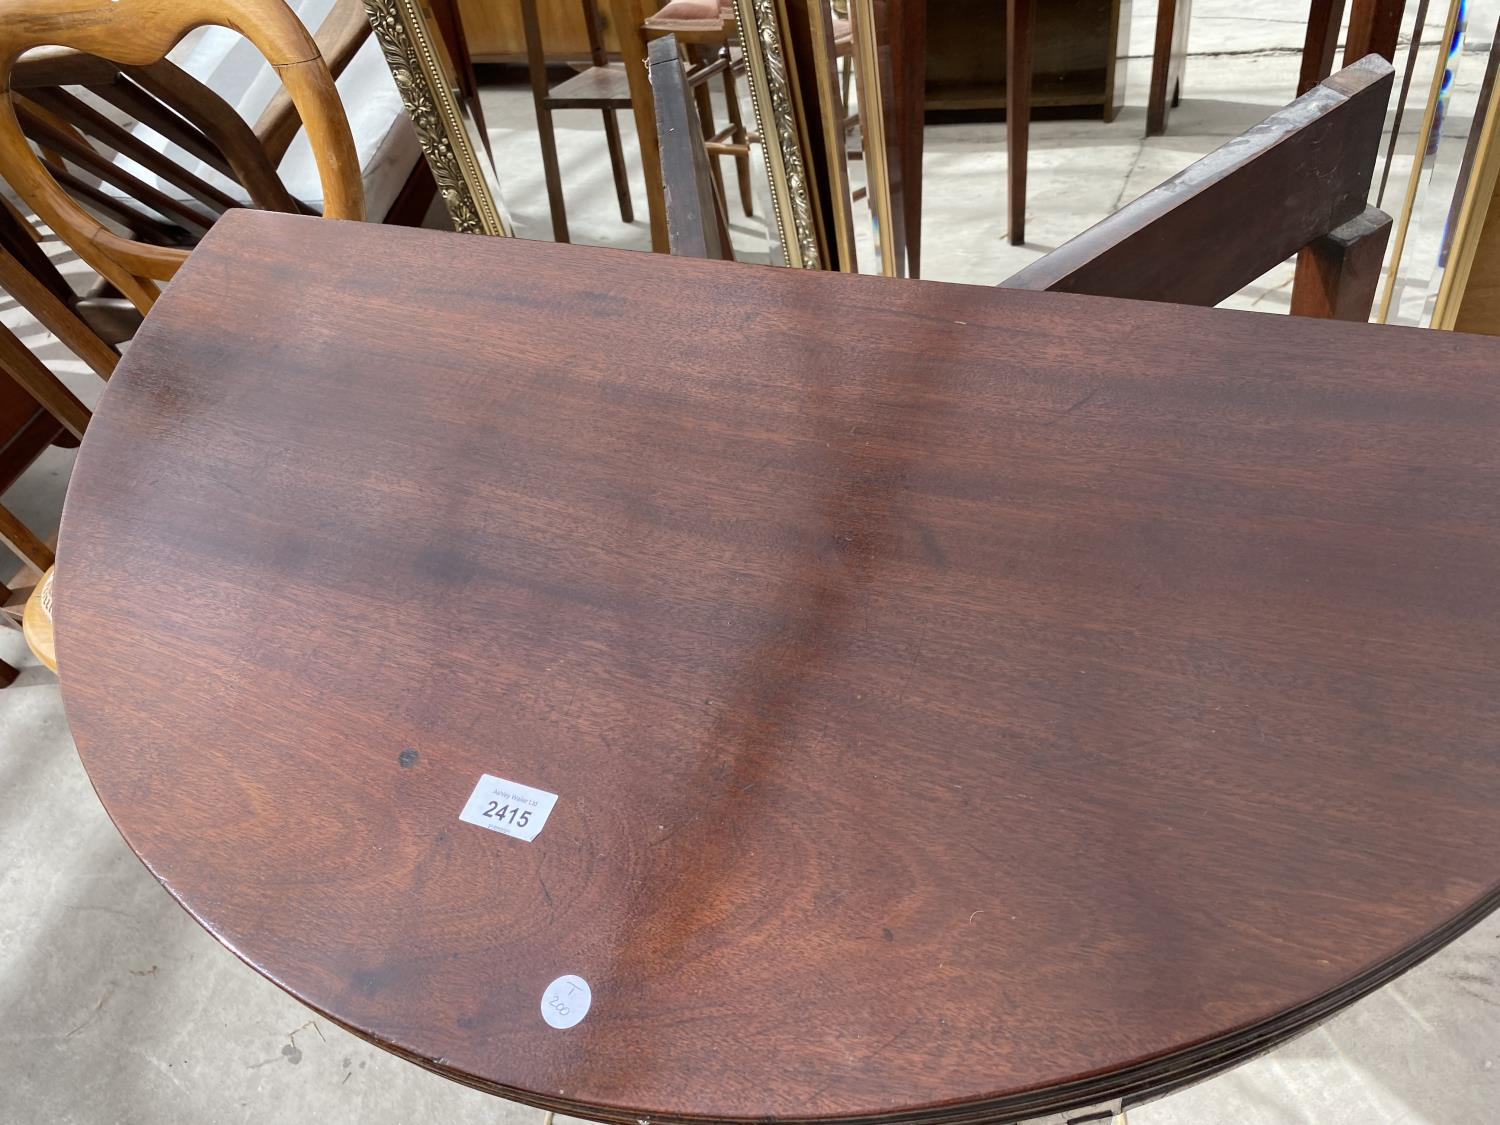 """A GEORGE III MAHOGANY AND INLAID FOLD-OVER TEA TABLE, 35"""" DIAMETER OPENED - Image 2 of 5"""